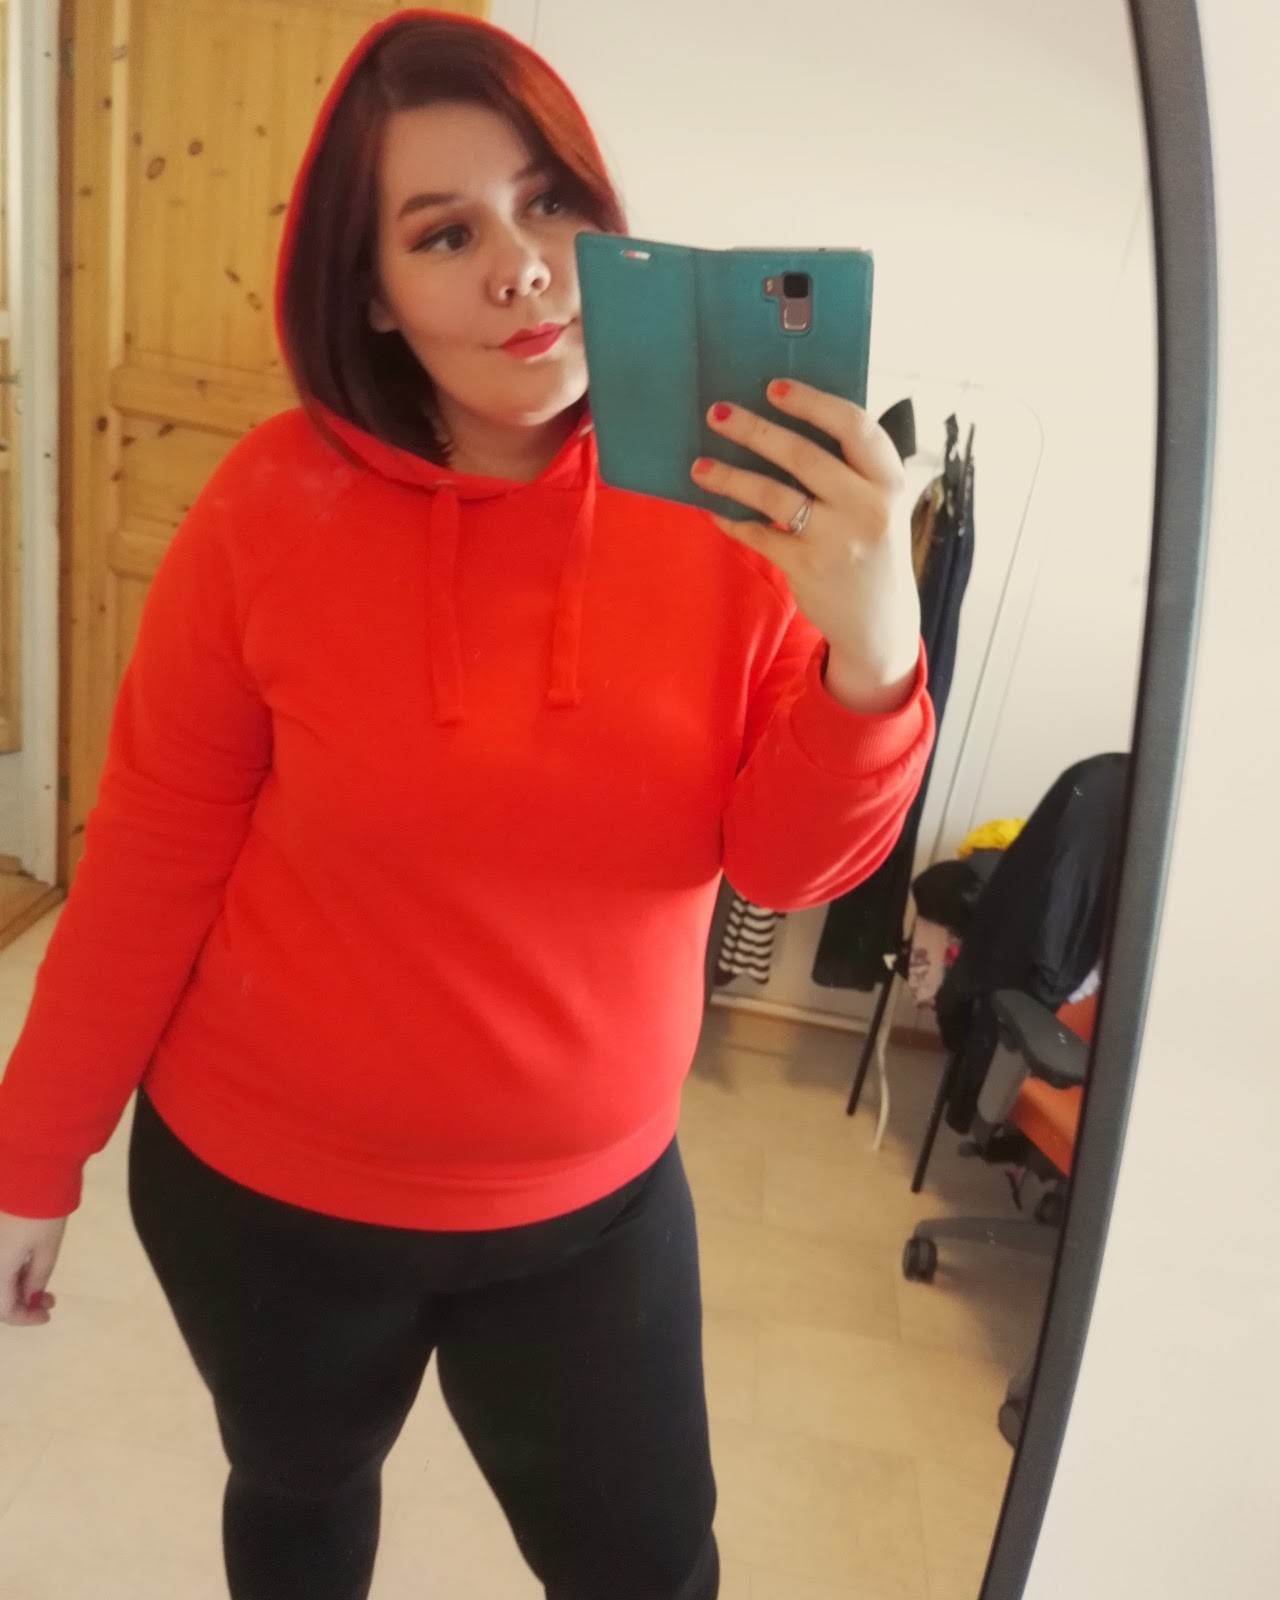 1788a0e0db New Spring Clothes from ASOS, Boohoo & Gina Tricot (video)